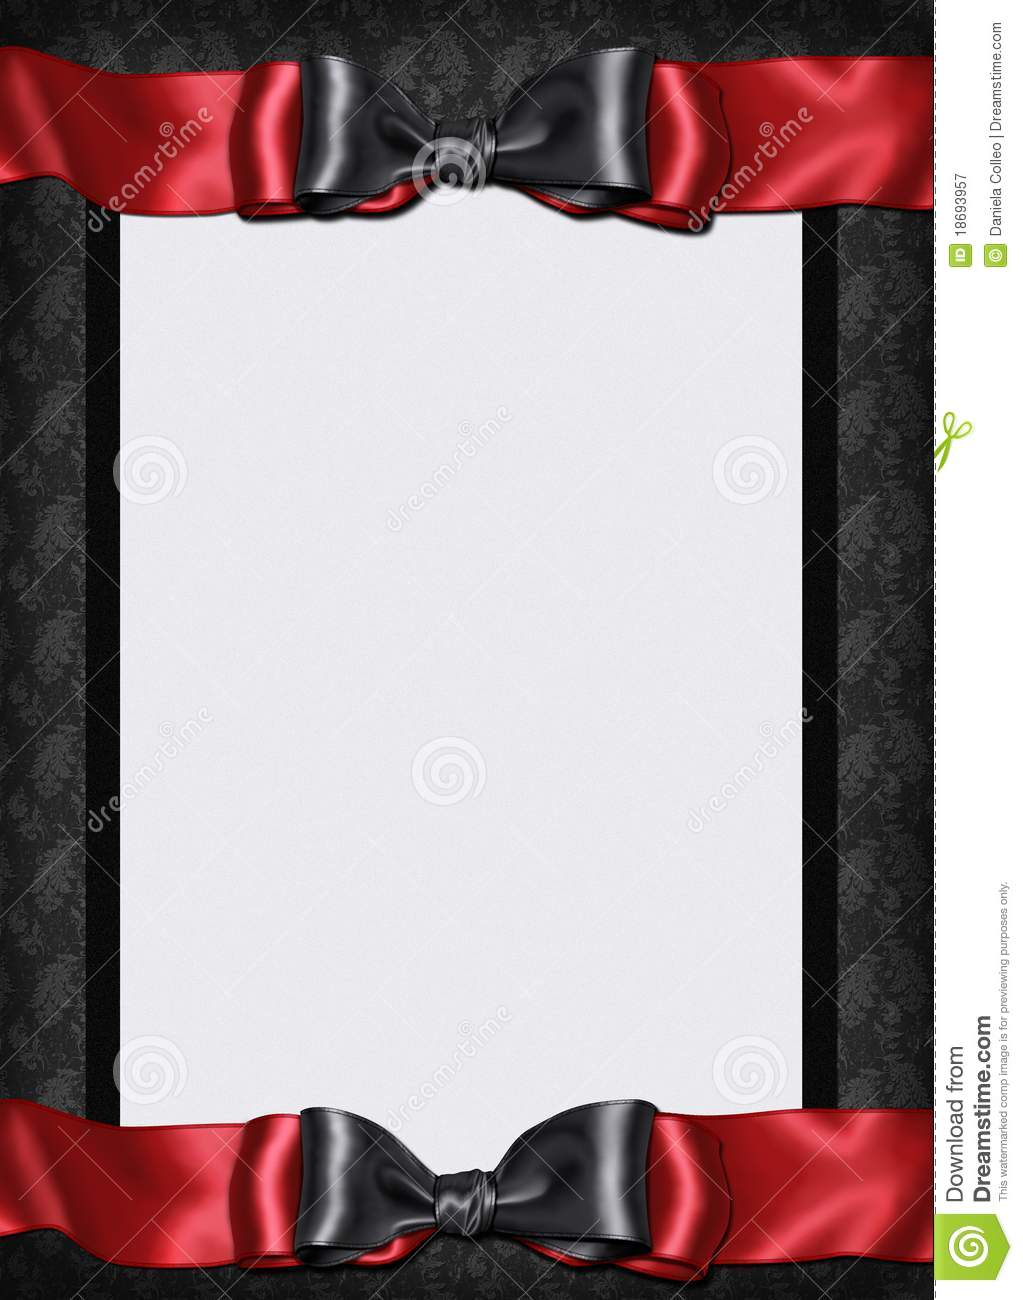 Black And White Gothic Wallpaper Goth Card Menu Invitation Stock Illustration Image Of